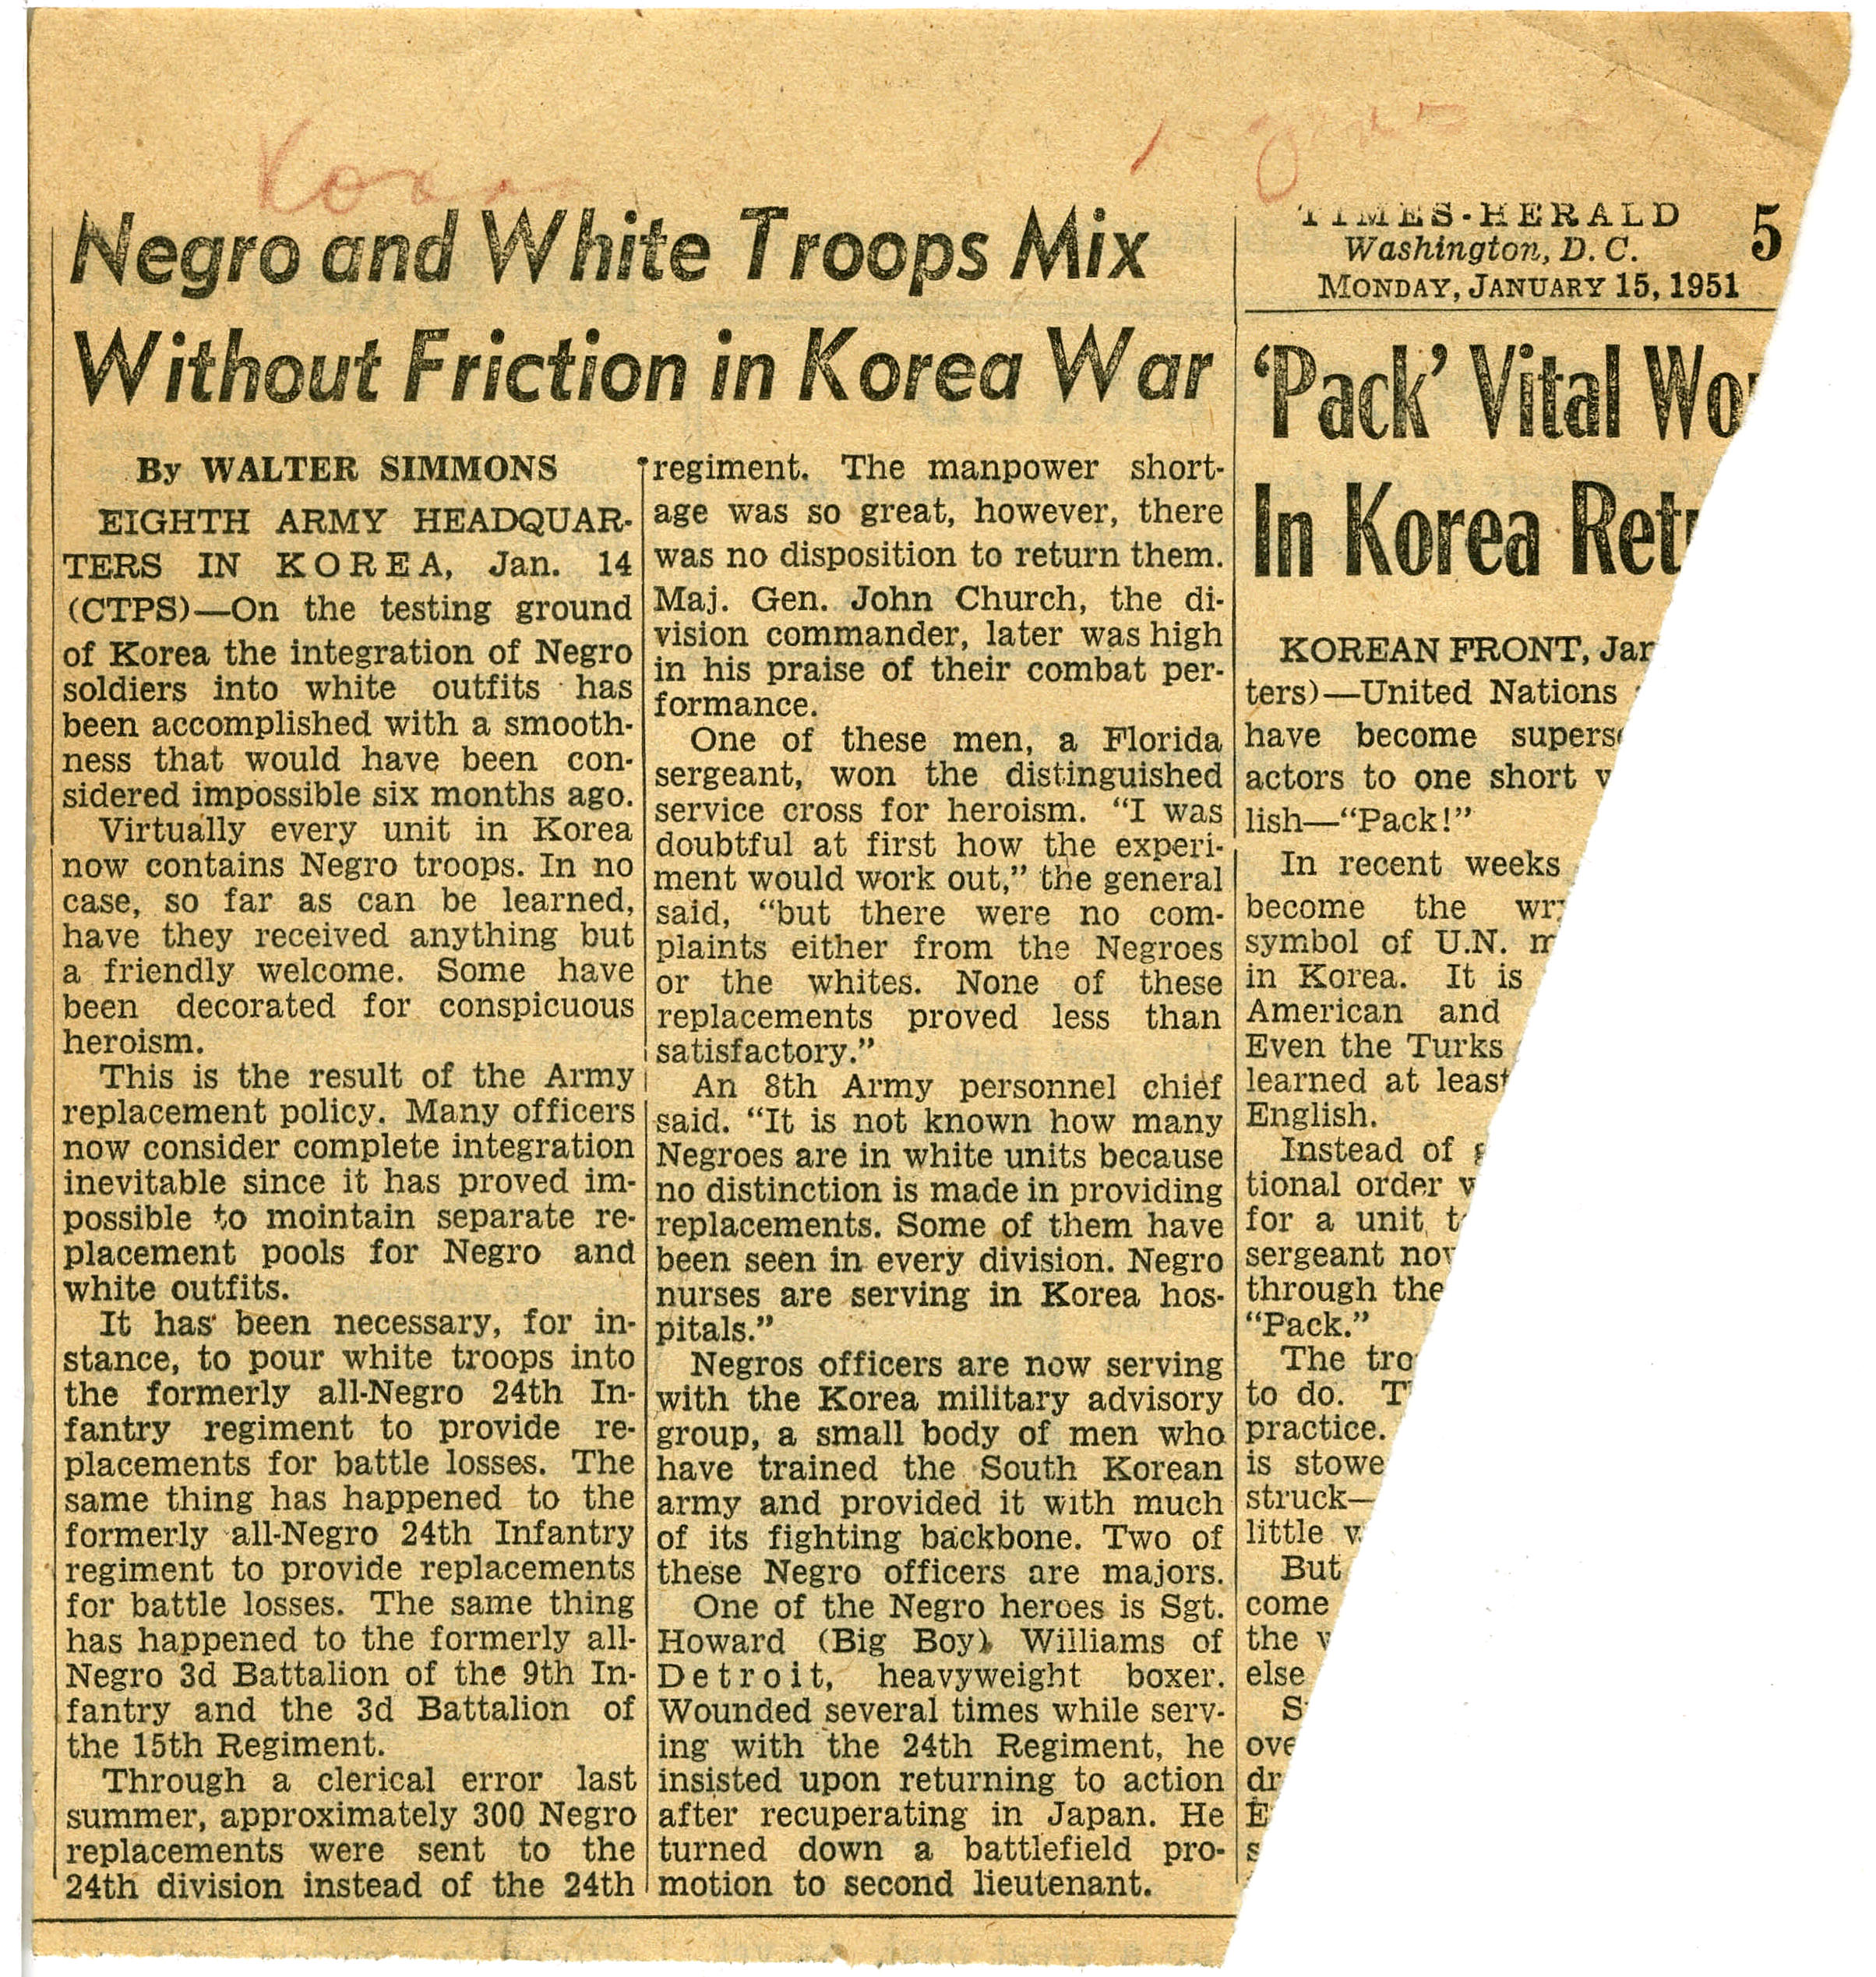 """Negro and White Troops Mix Without Friction in Korea War"", Walter Simmons, 1951 January 15, Johnson Publishing Company clipping files collection, 1940-2020"